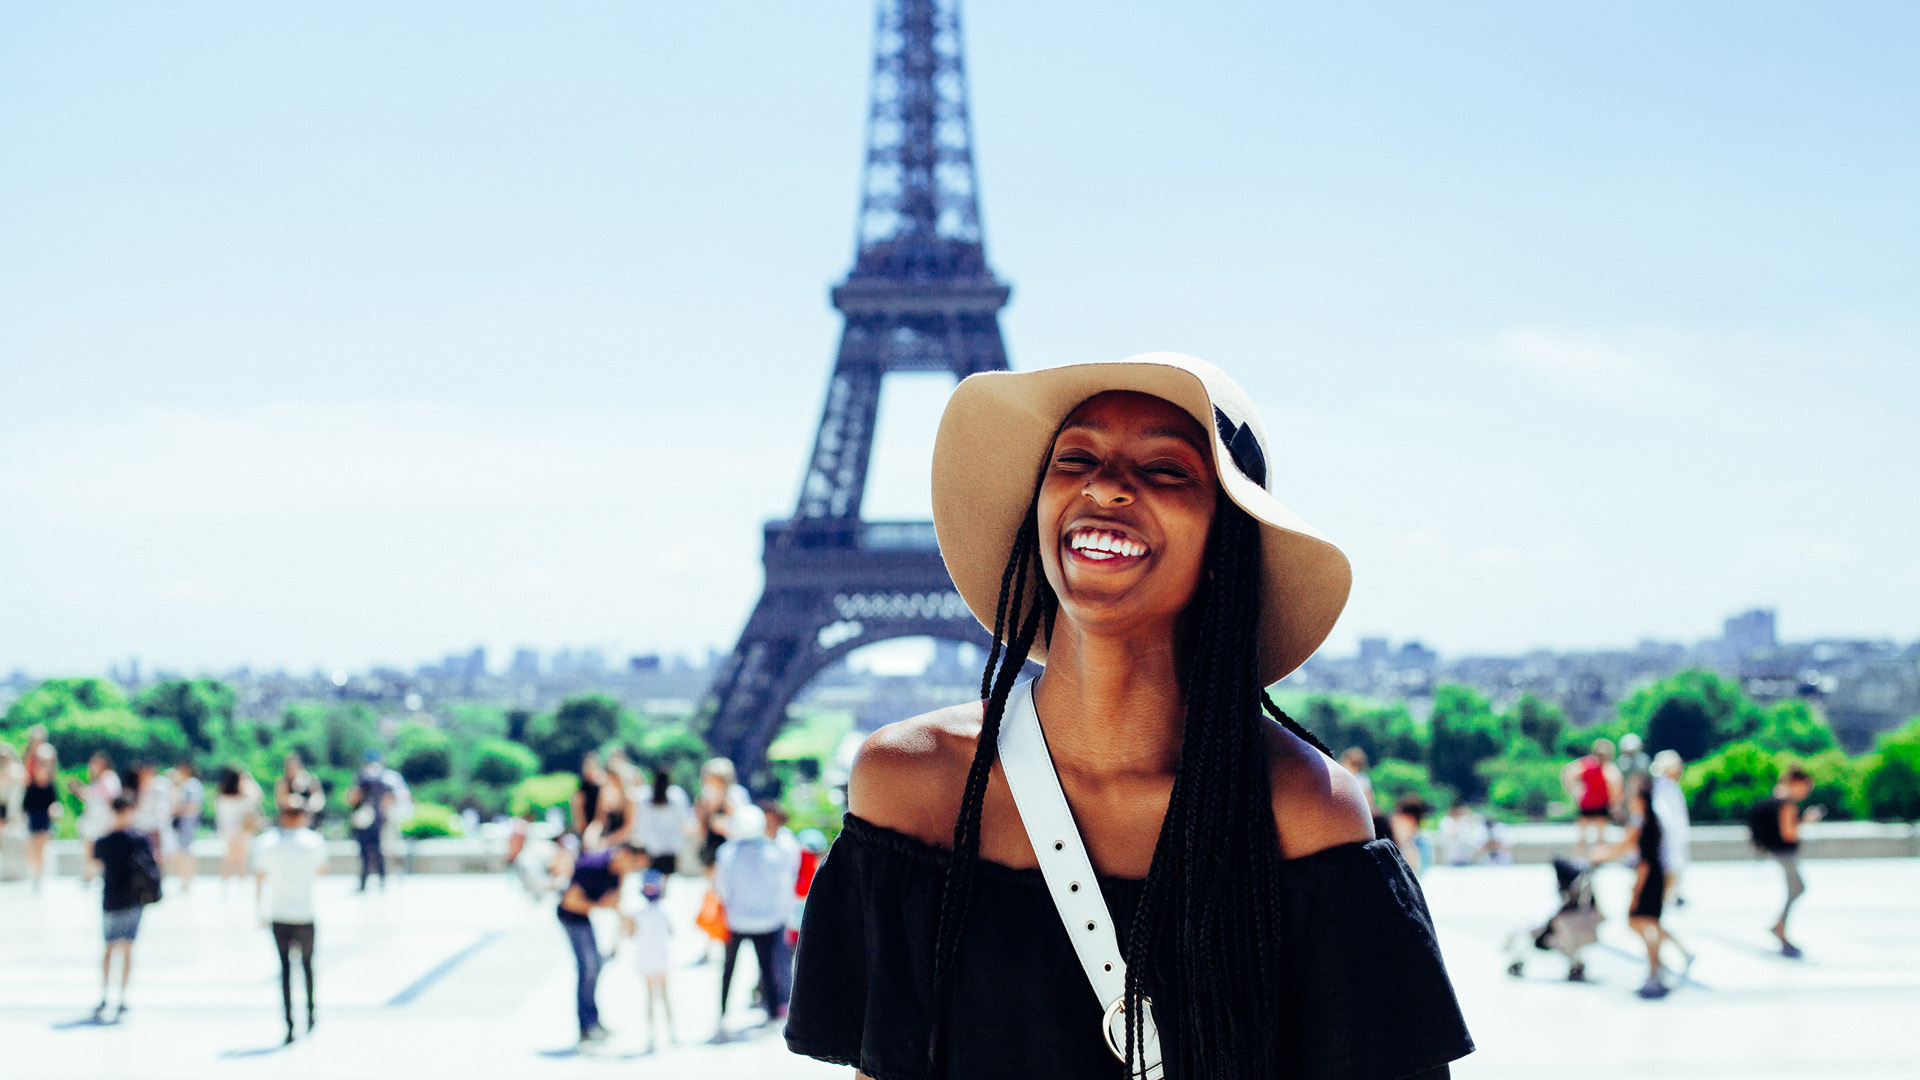 Woman Smiling In Front of Eiffel Tower